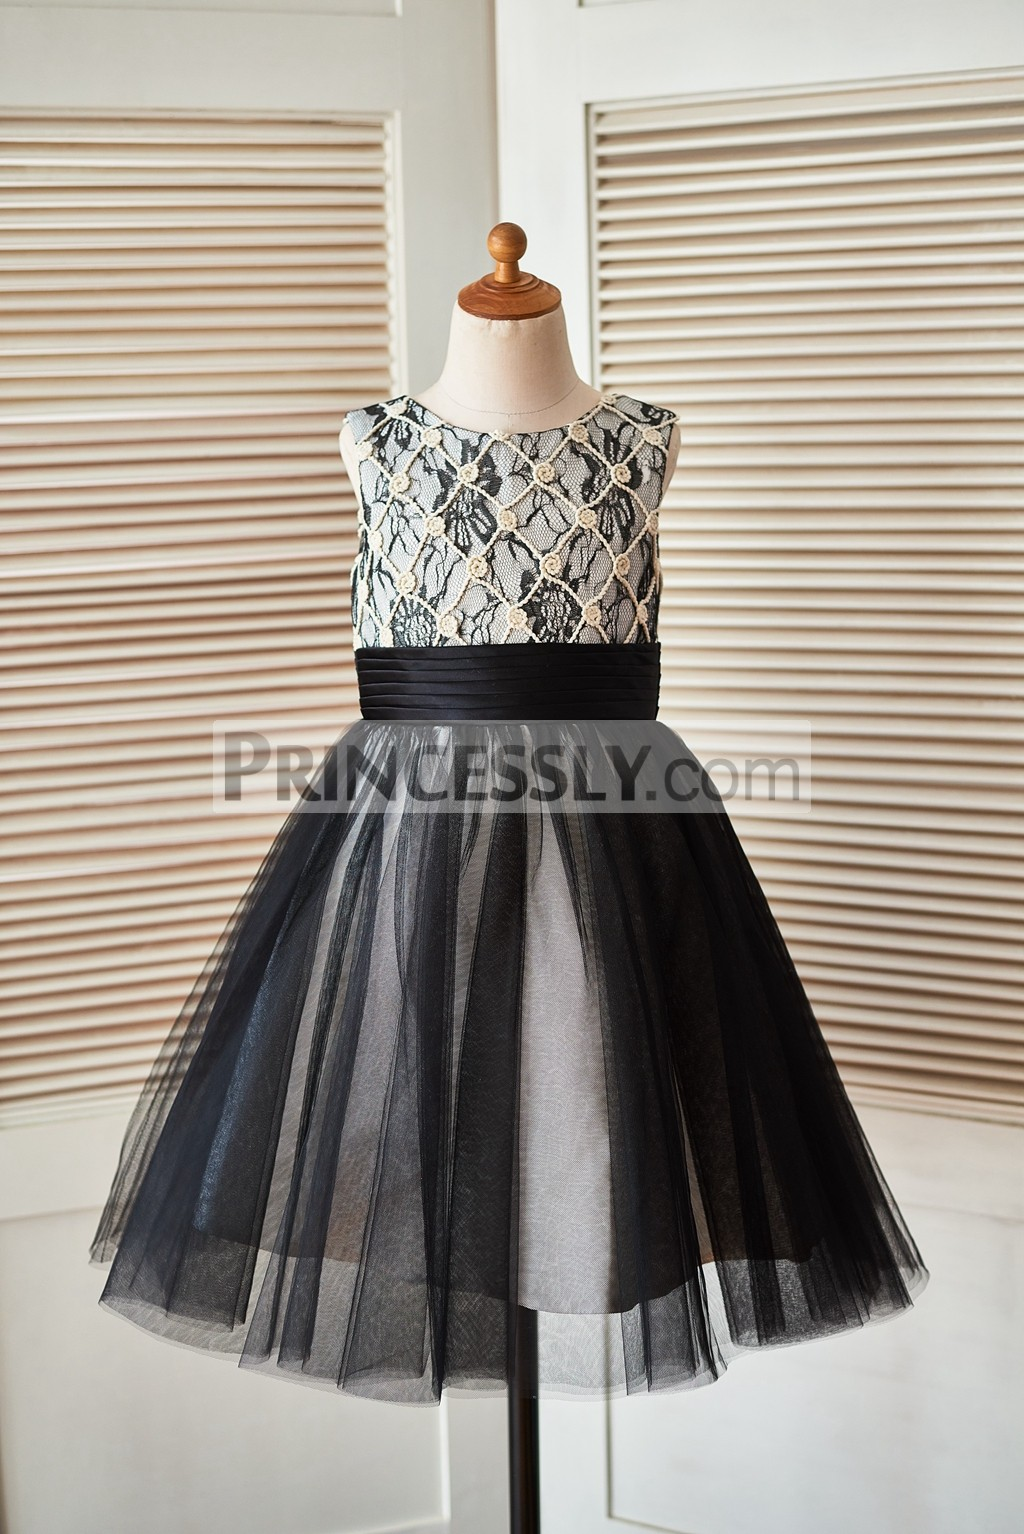 Champagne Rope Grid Black Lace Tulle Flower Girl Dress